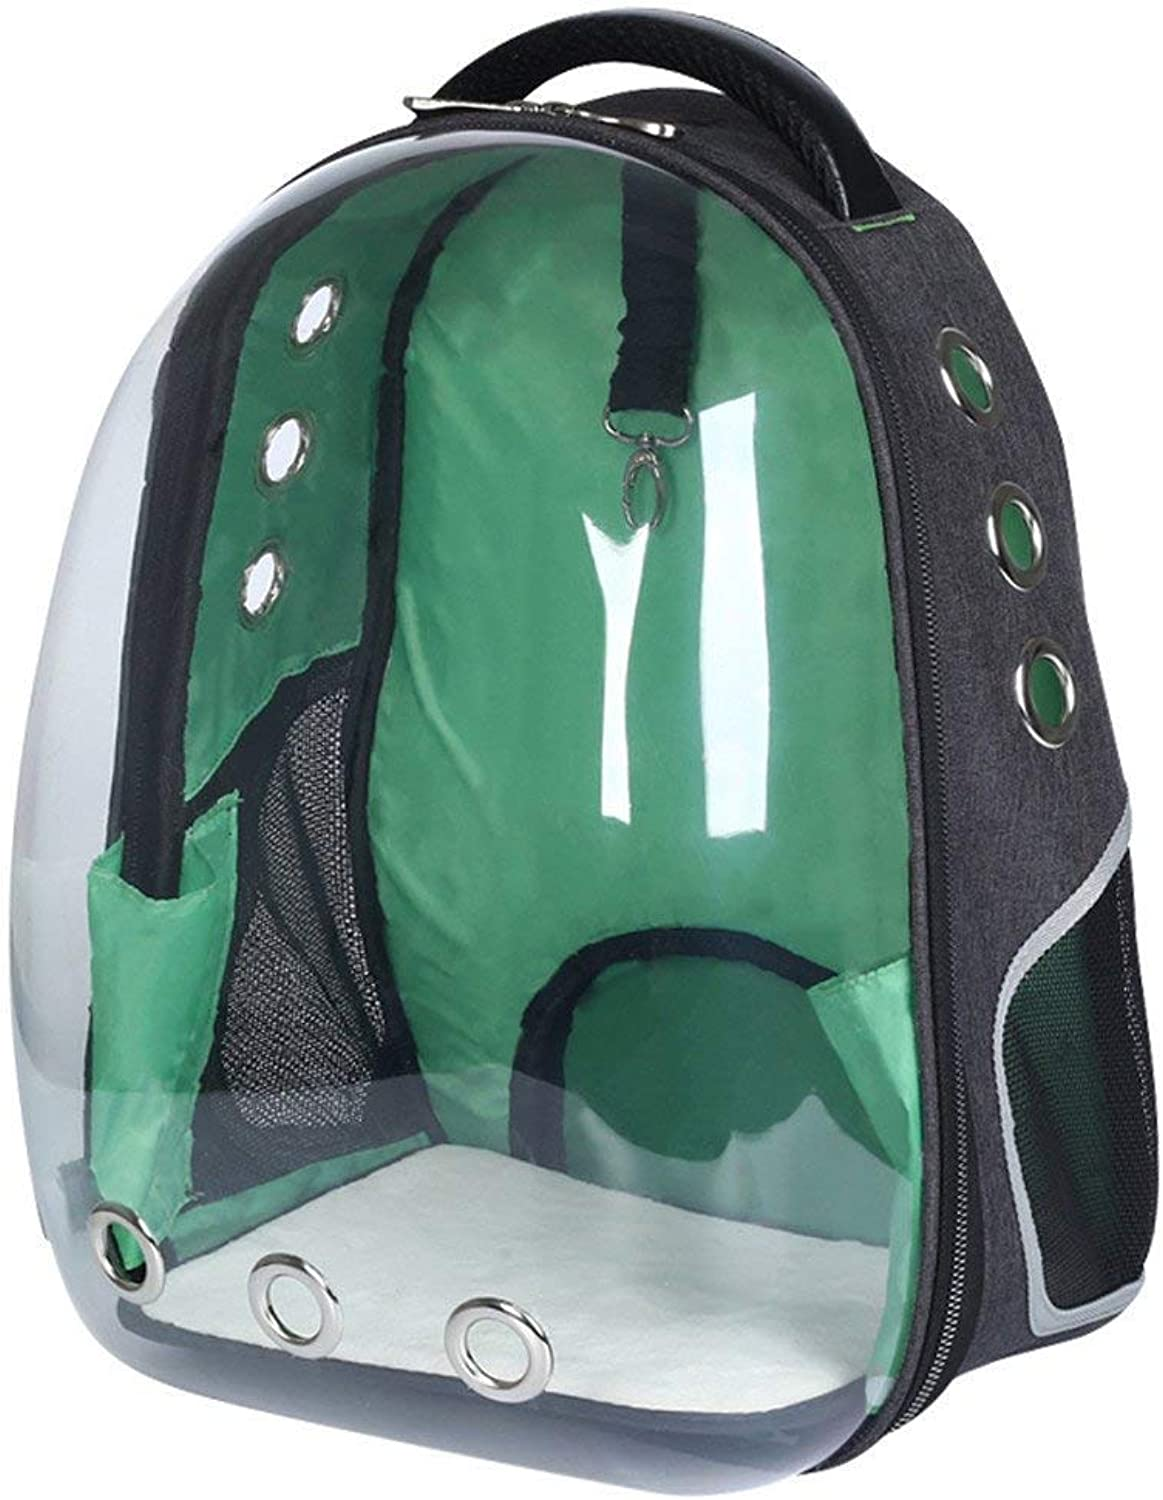 Dreamsoule Transparent Breathable Pet Carrier Travel Bag,Portable Space Capsule Pet Carry Backpack,Outdoor Cat Dog Carrier Backpack for Cats Puppy Small Dogs Green